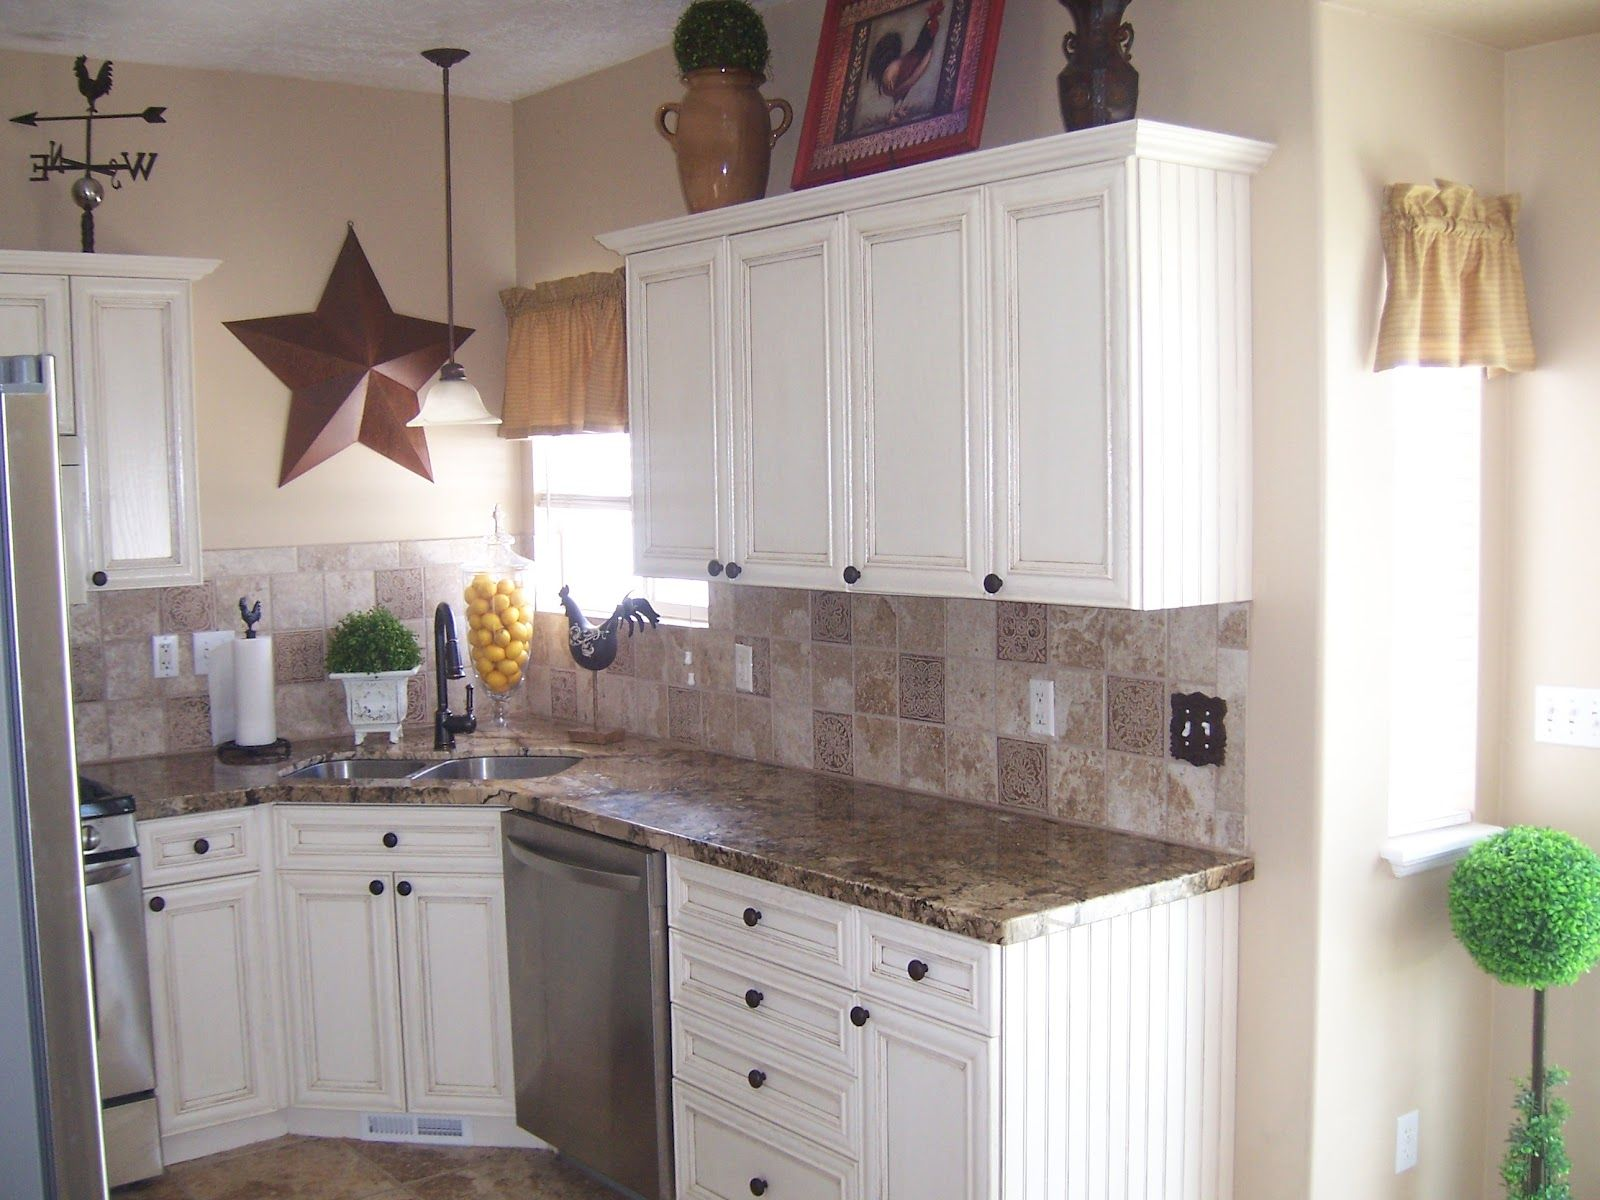 White Laminate Kitchen Countertops white cabinets with laminate countertops | laminate counter tops